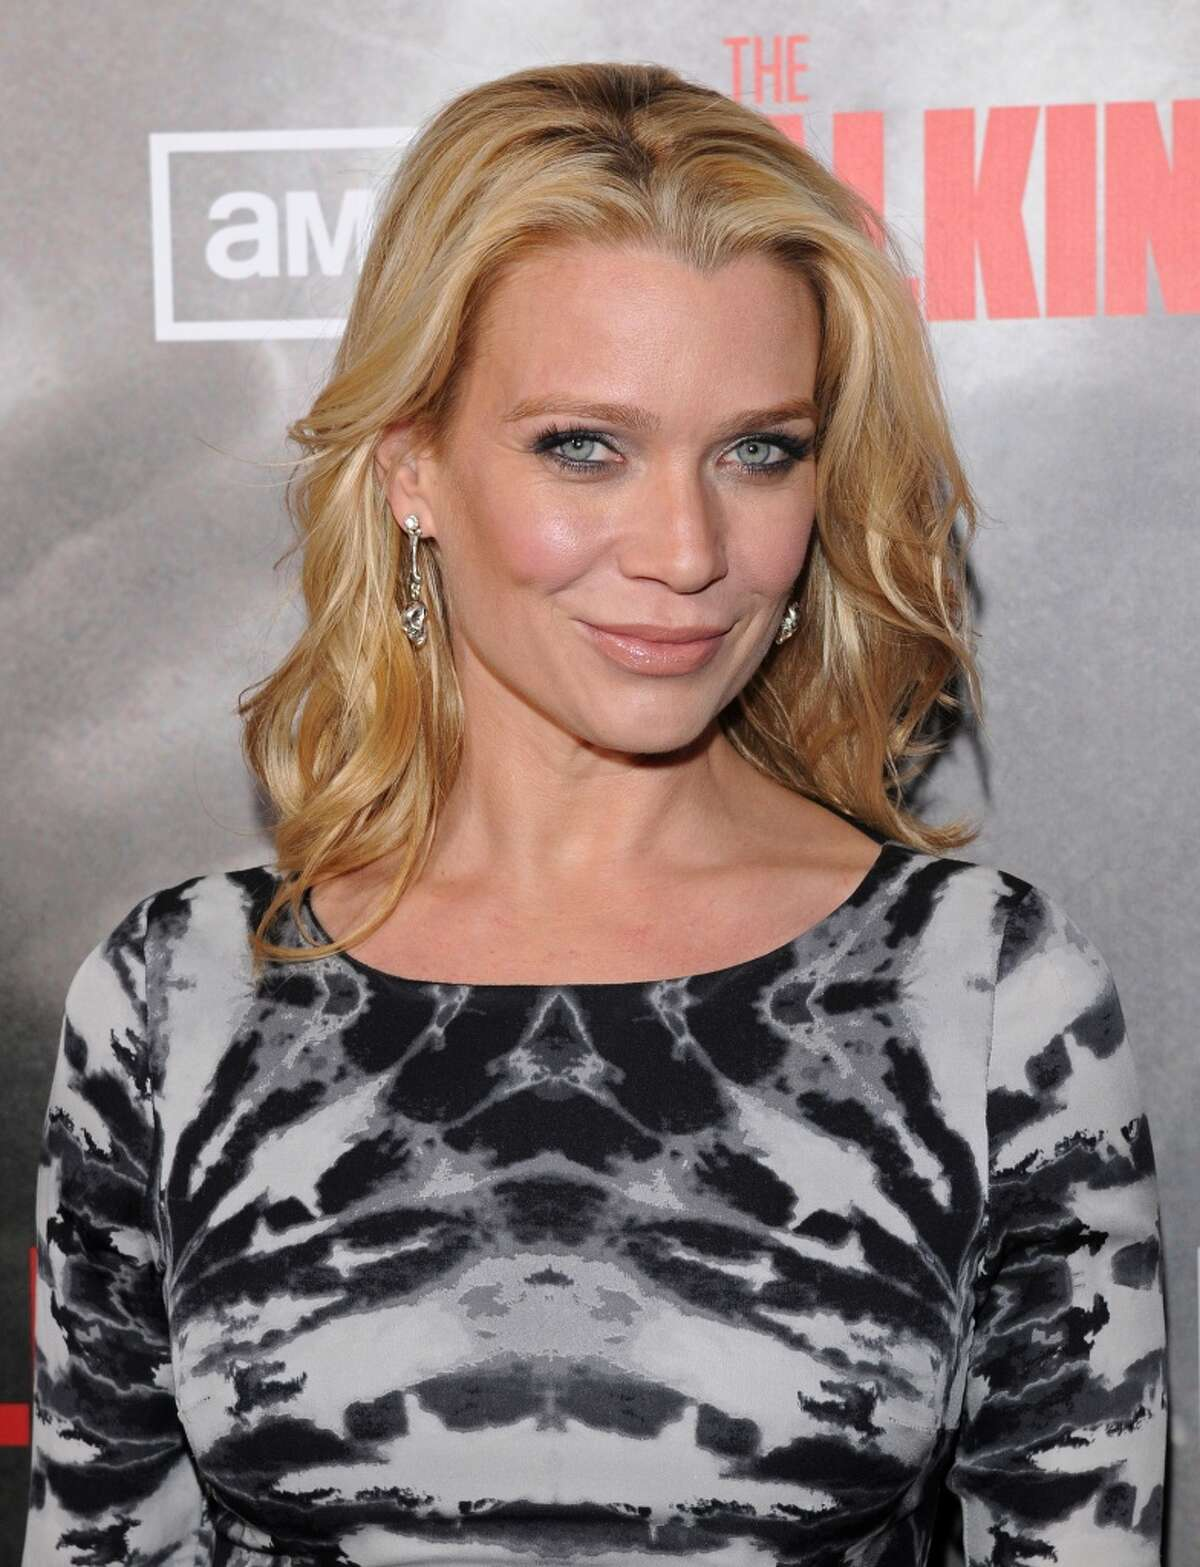 Laurie Holden , who played the zombie-fighter who almost became a zombie herself on 'The Walking Dead', is a hero in real life as well. Holden reportedly was involved in an undercover operation that helped free 55 sex slaves in Cambodia.Keep clicking to see other celebrities -- living and dead -- and their causes.